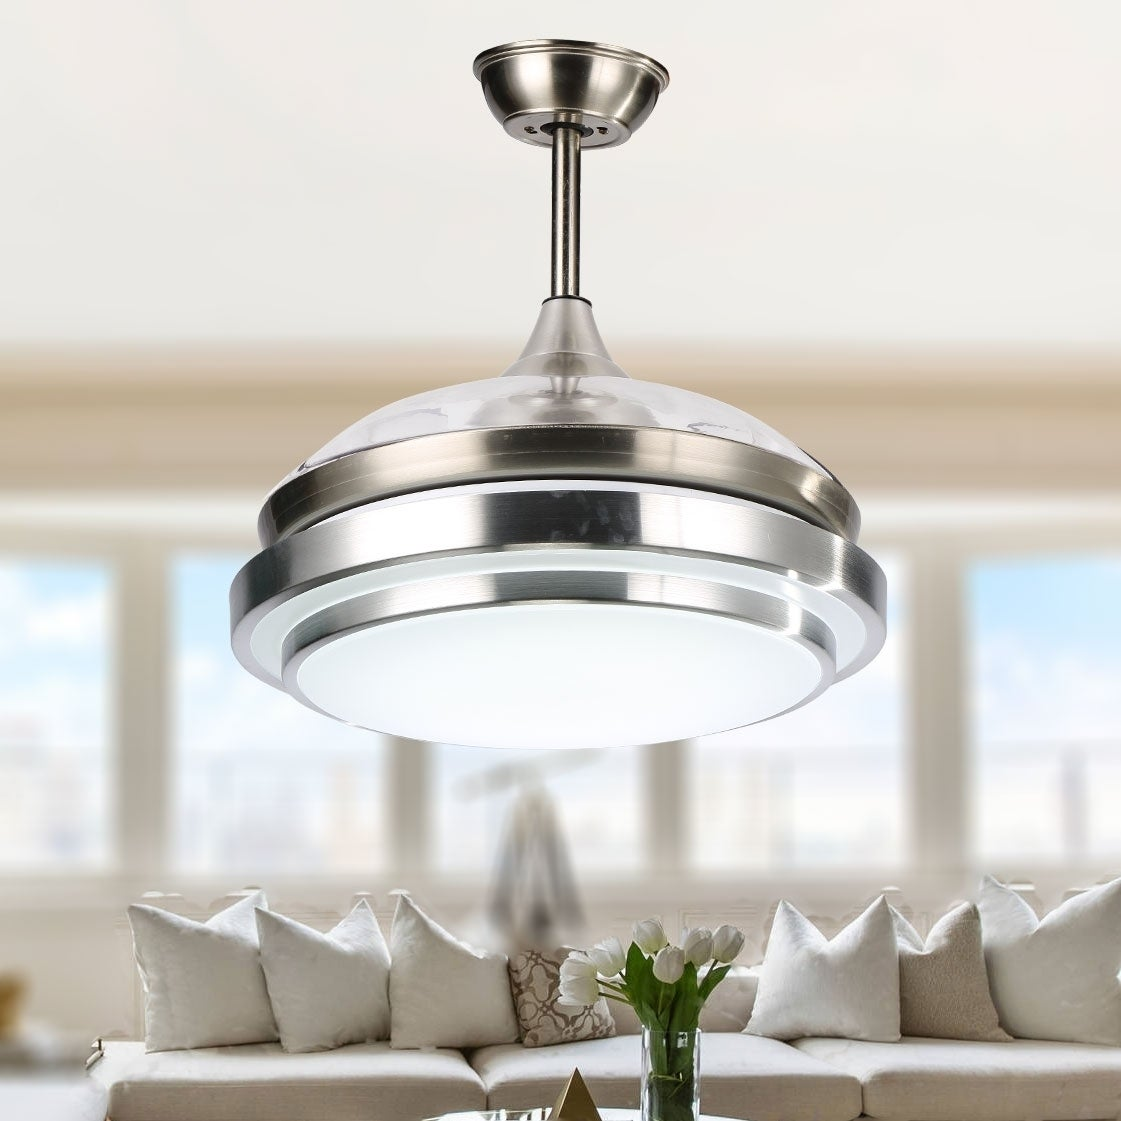 Contemporary Bladeless Ceiling Fan